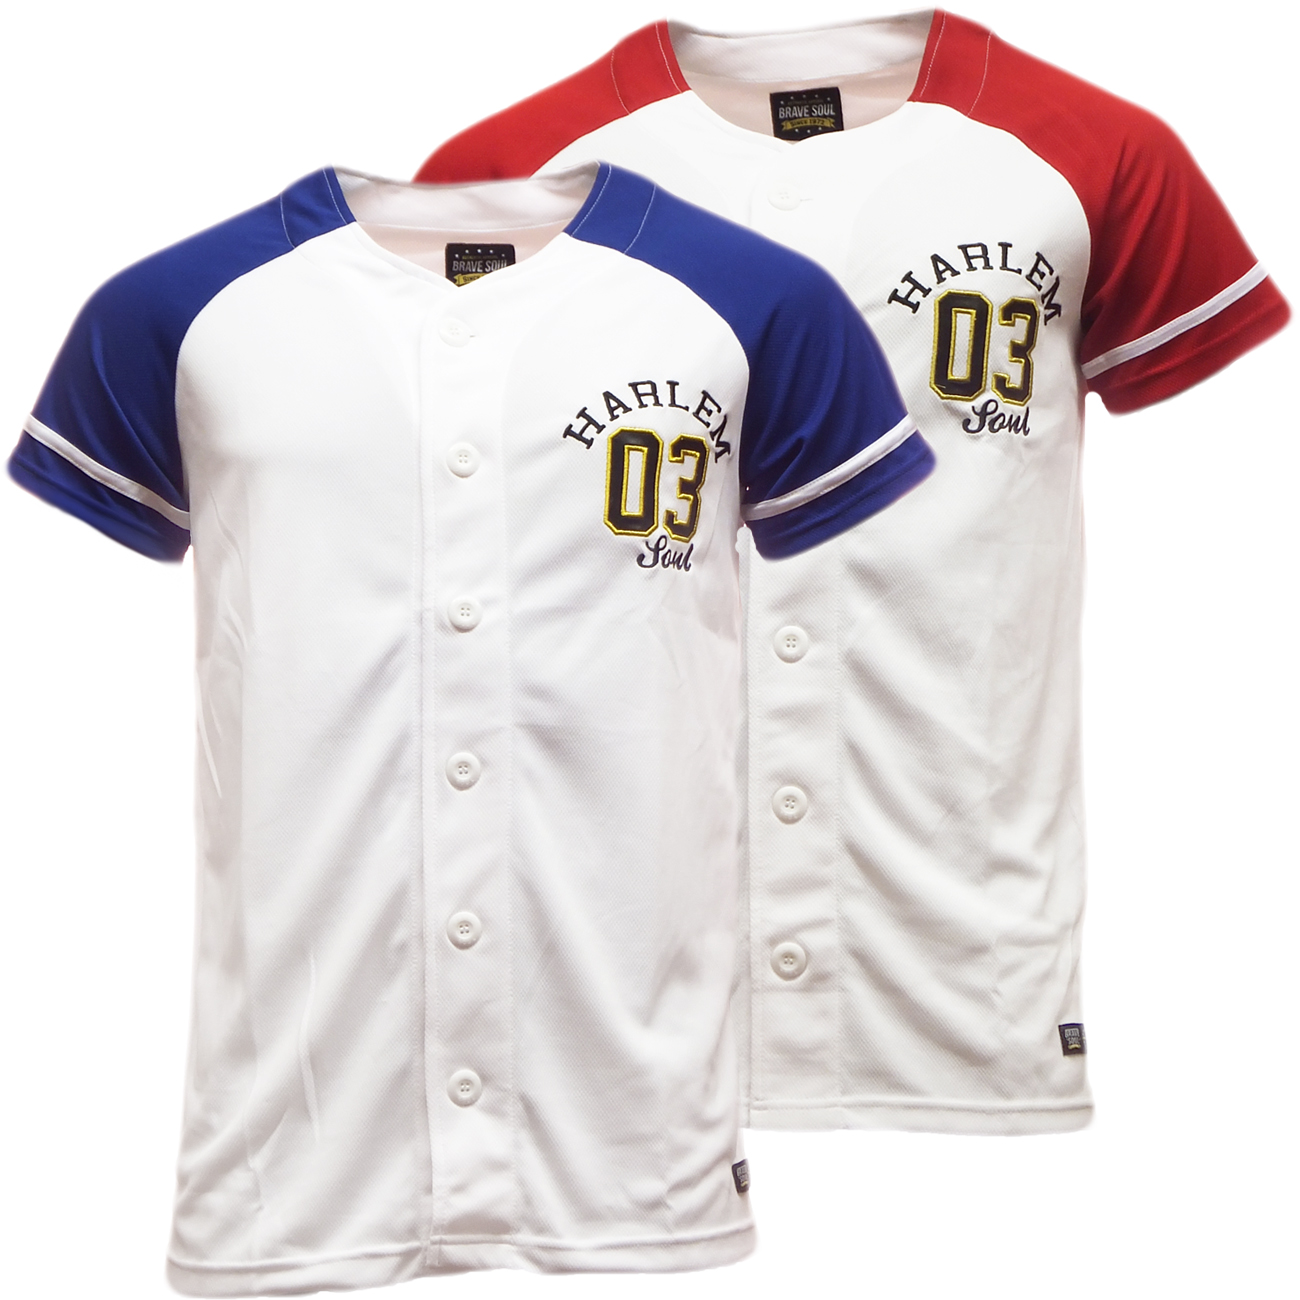 Buy low price, high quality baseball t shirt button with worldwide shipping on bestsupsm5.cf